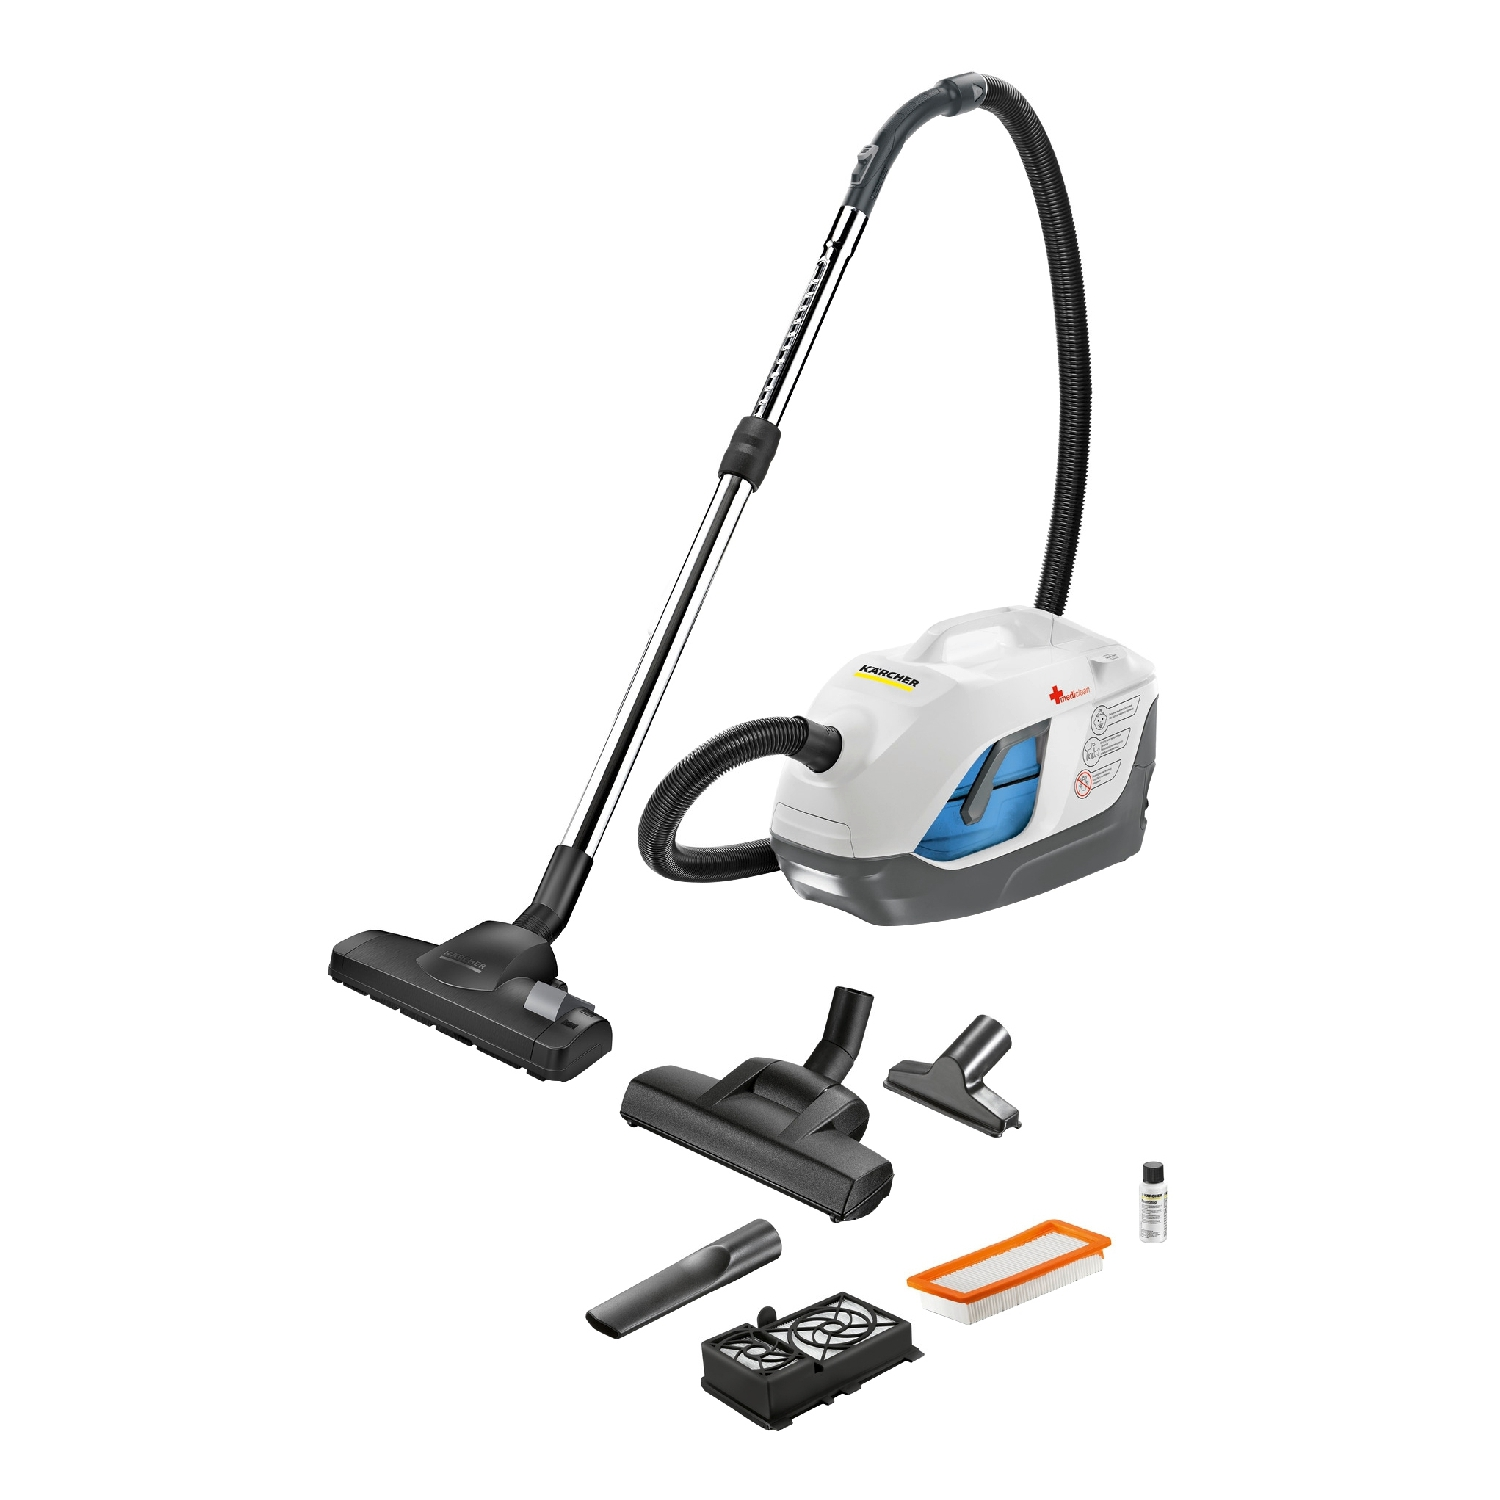 Vacuum cleaner for dry and wet cleaning Karcher DS 6 Premium Mediclean